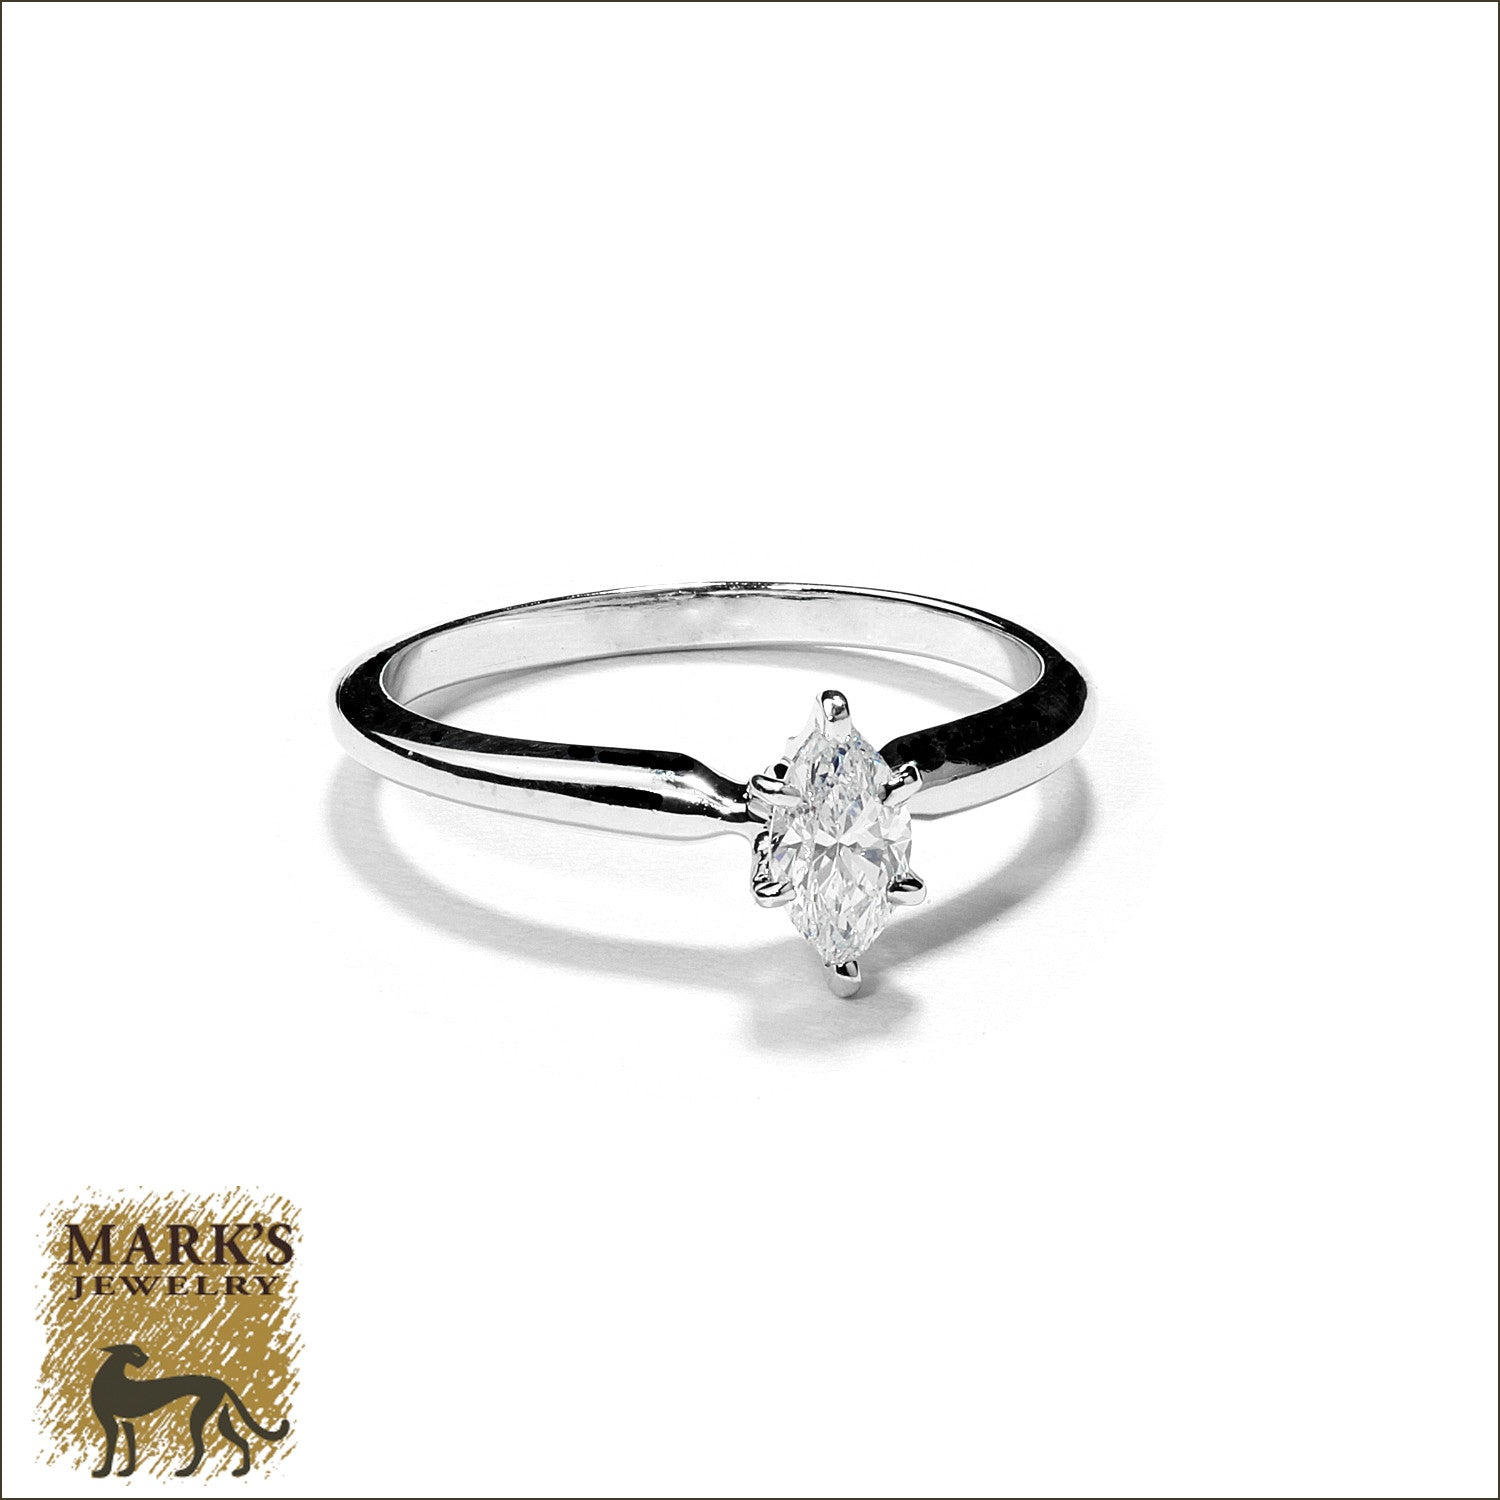 Estate 14K White Gold 0.33ct Marquise Diamond Ring, Marks Jewelry